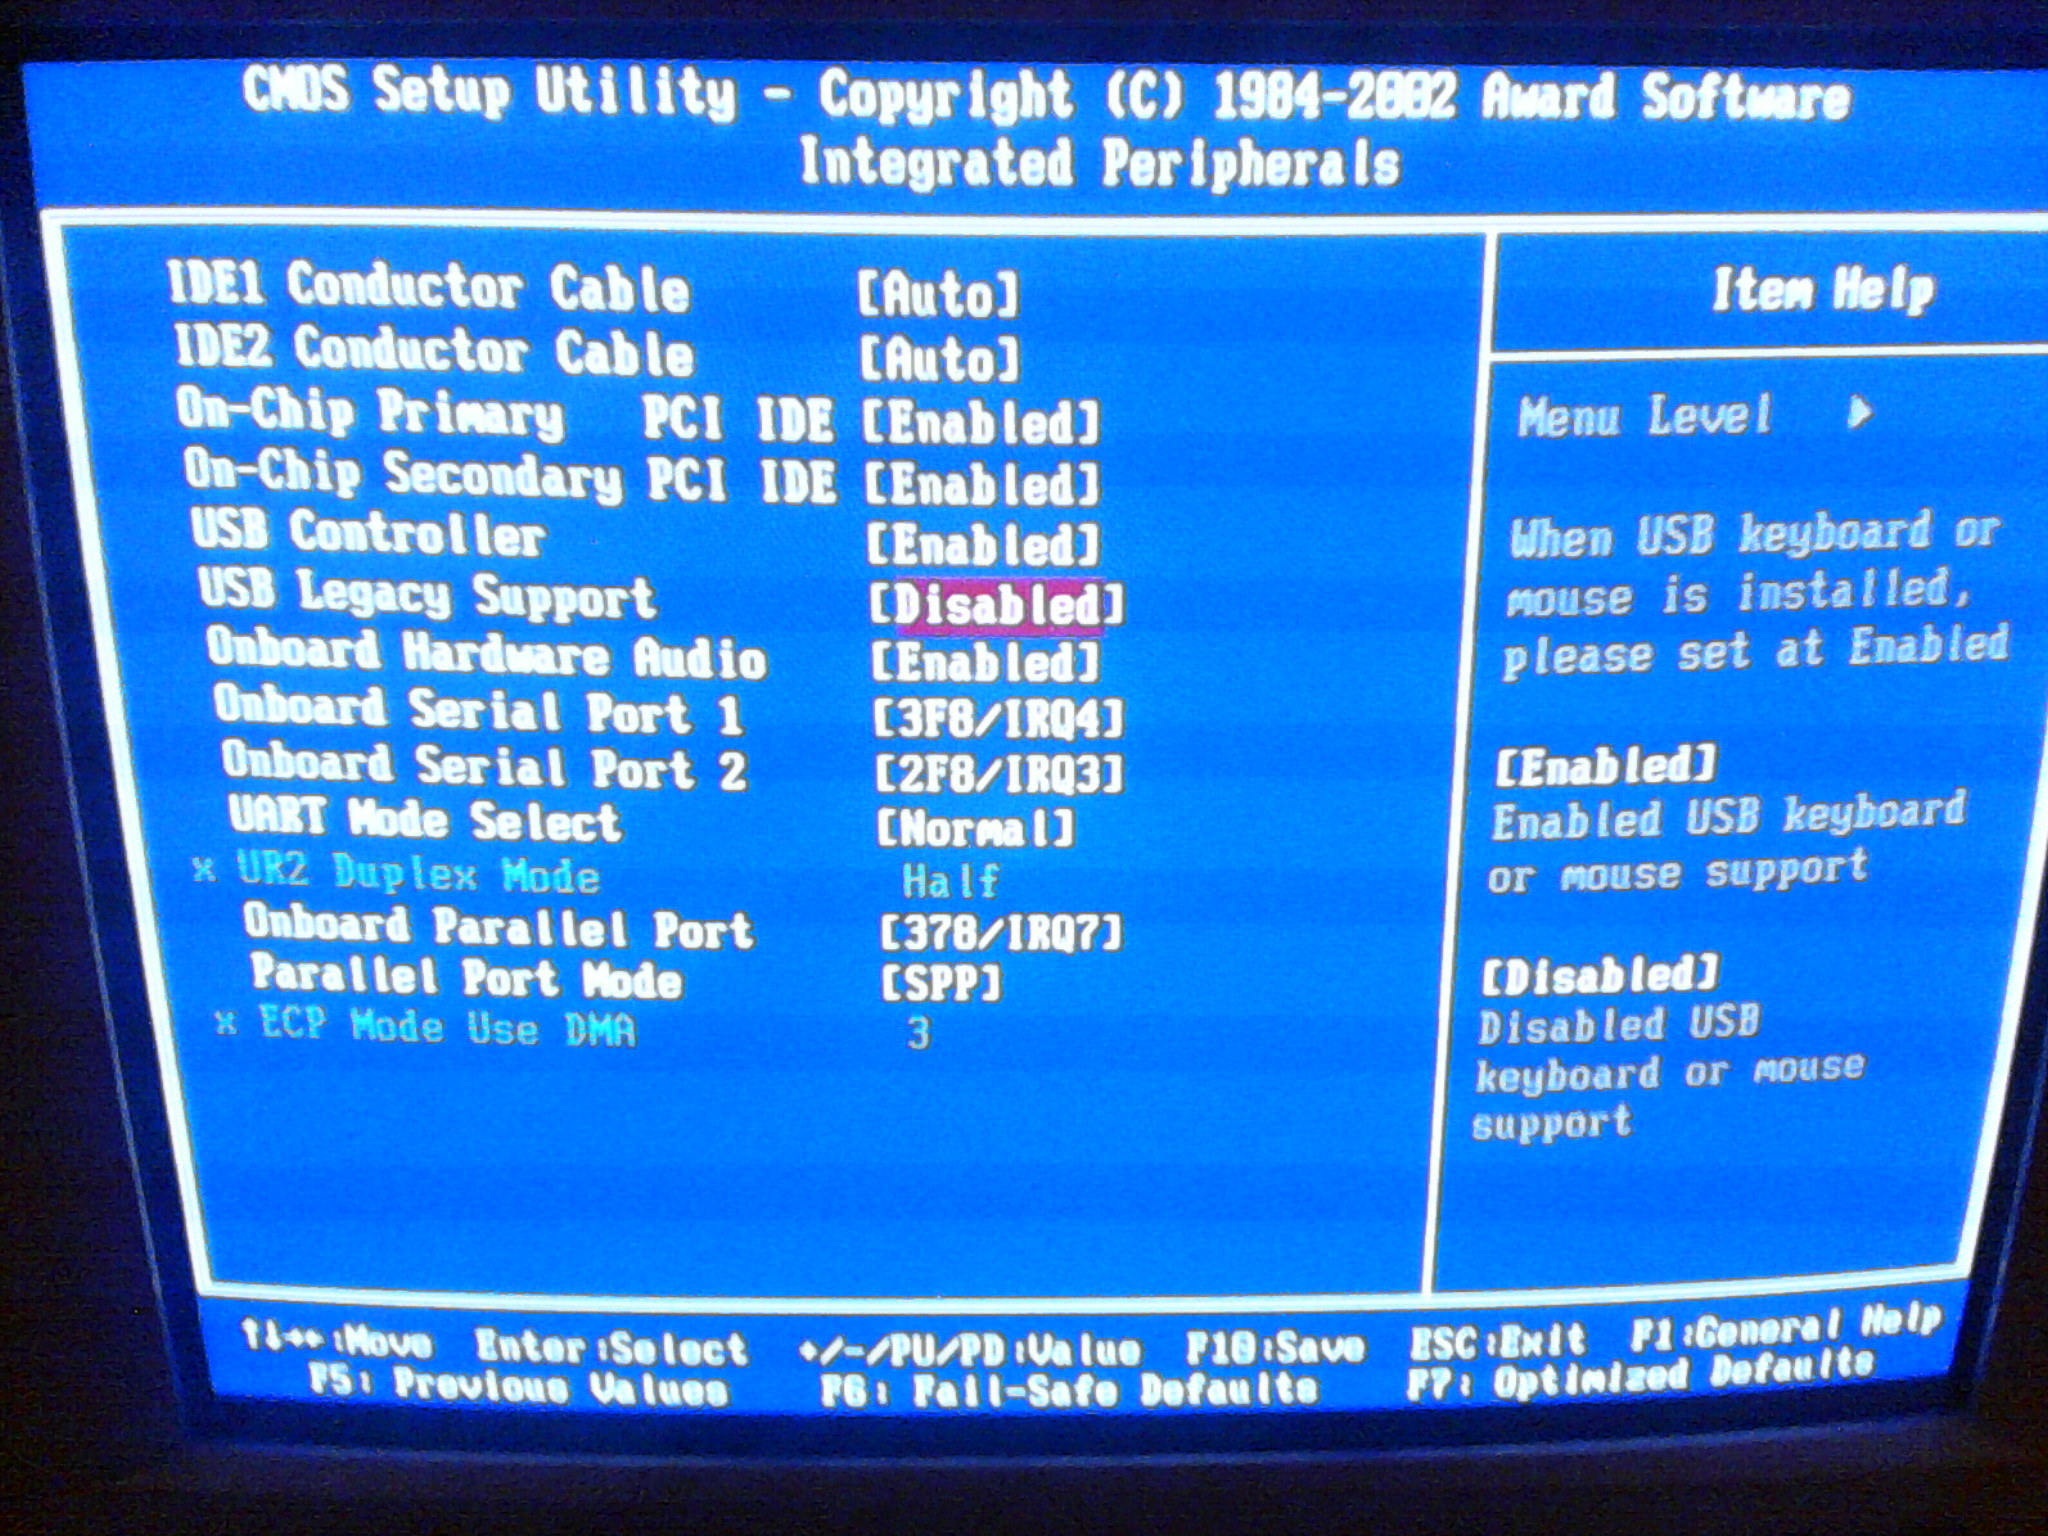 CORE-9092] ReactOS livecd freezes at boot on a real computer